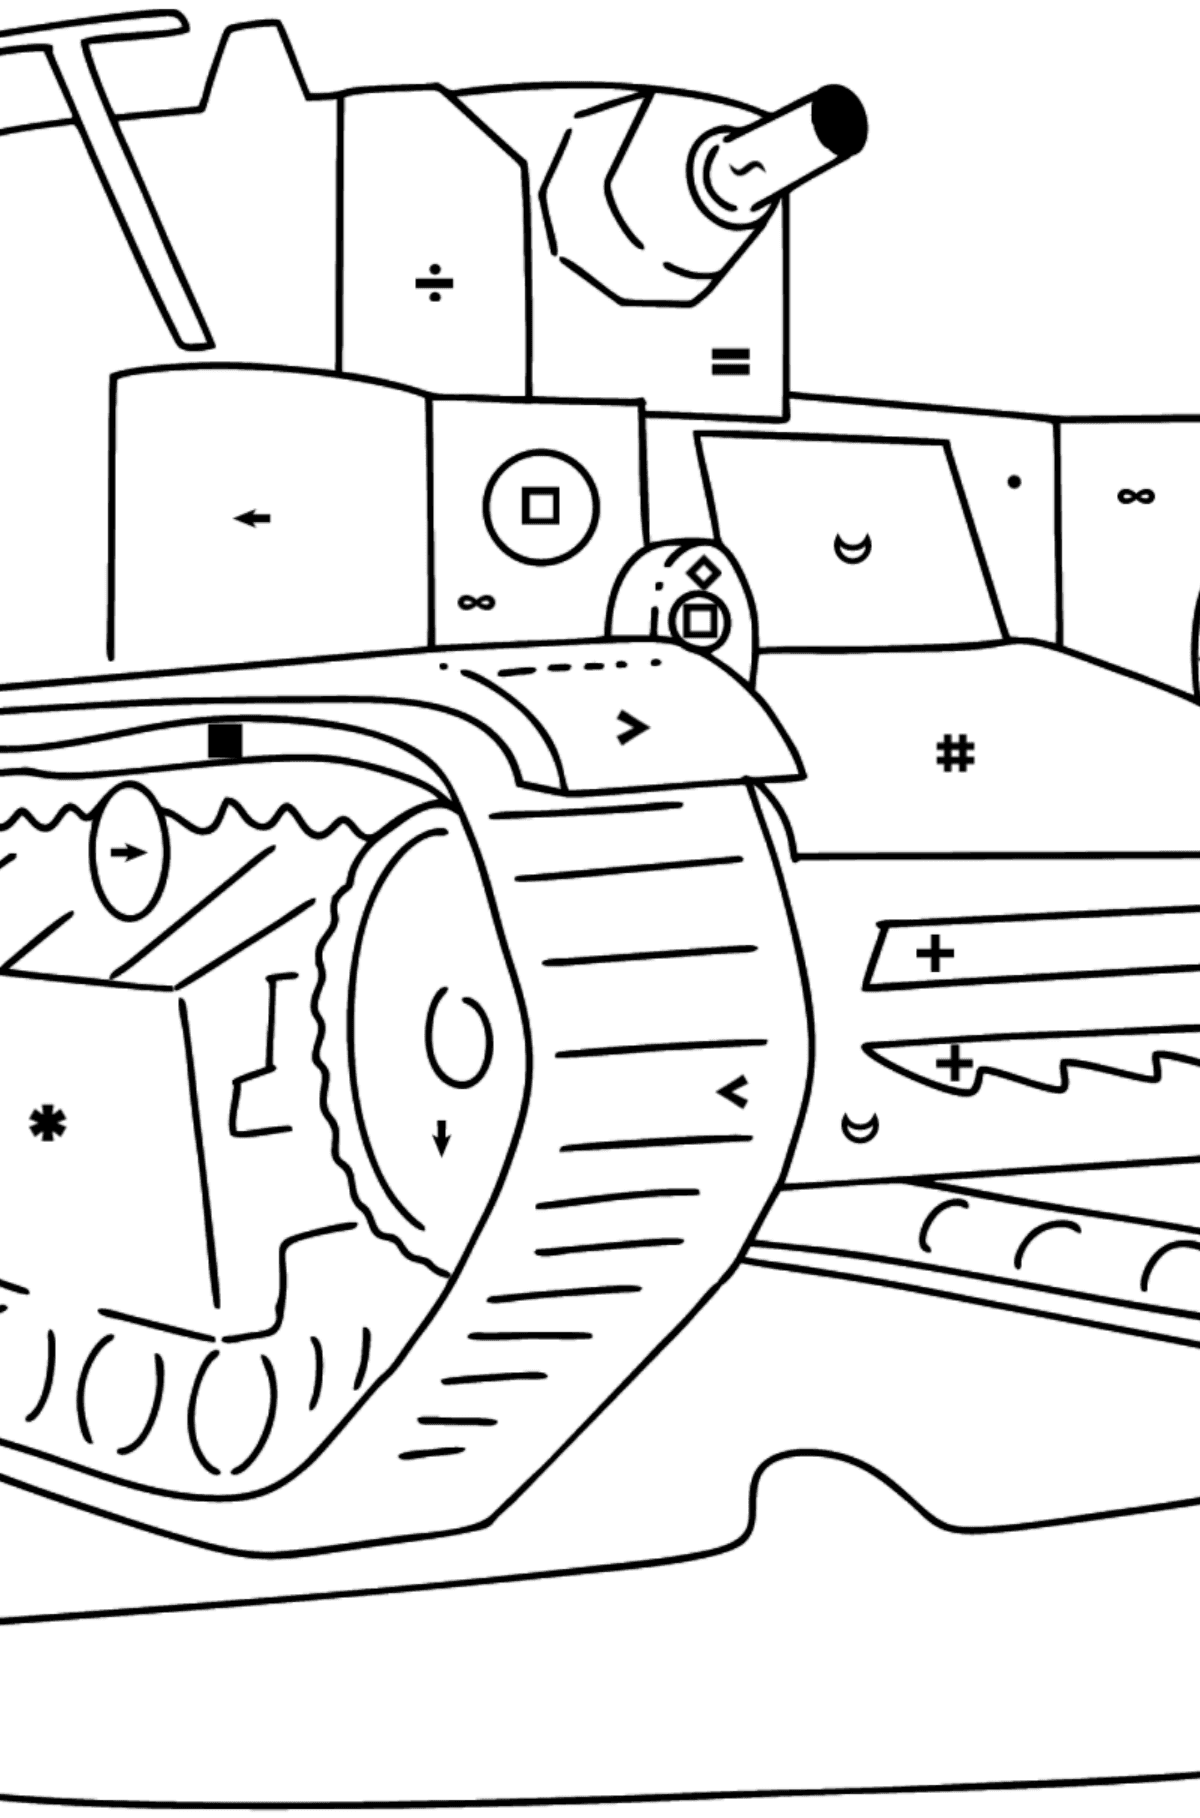 Tank T 28 coloring page - Coloring by Symbols for Kids